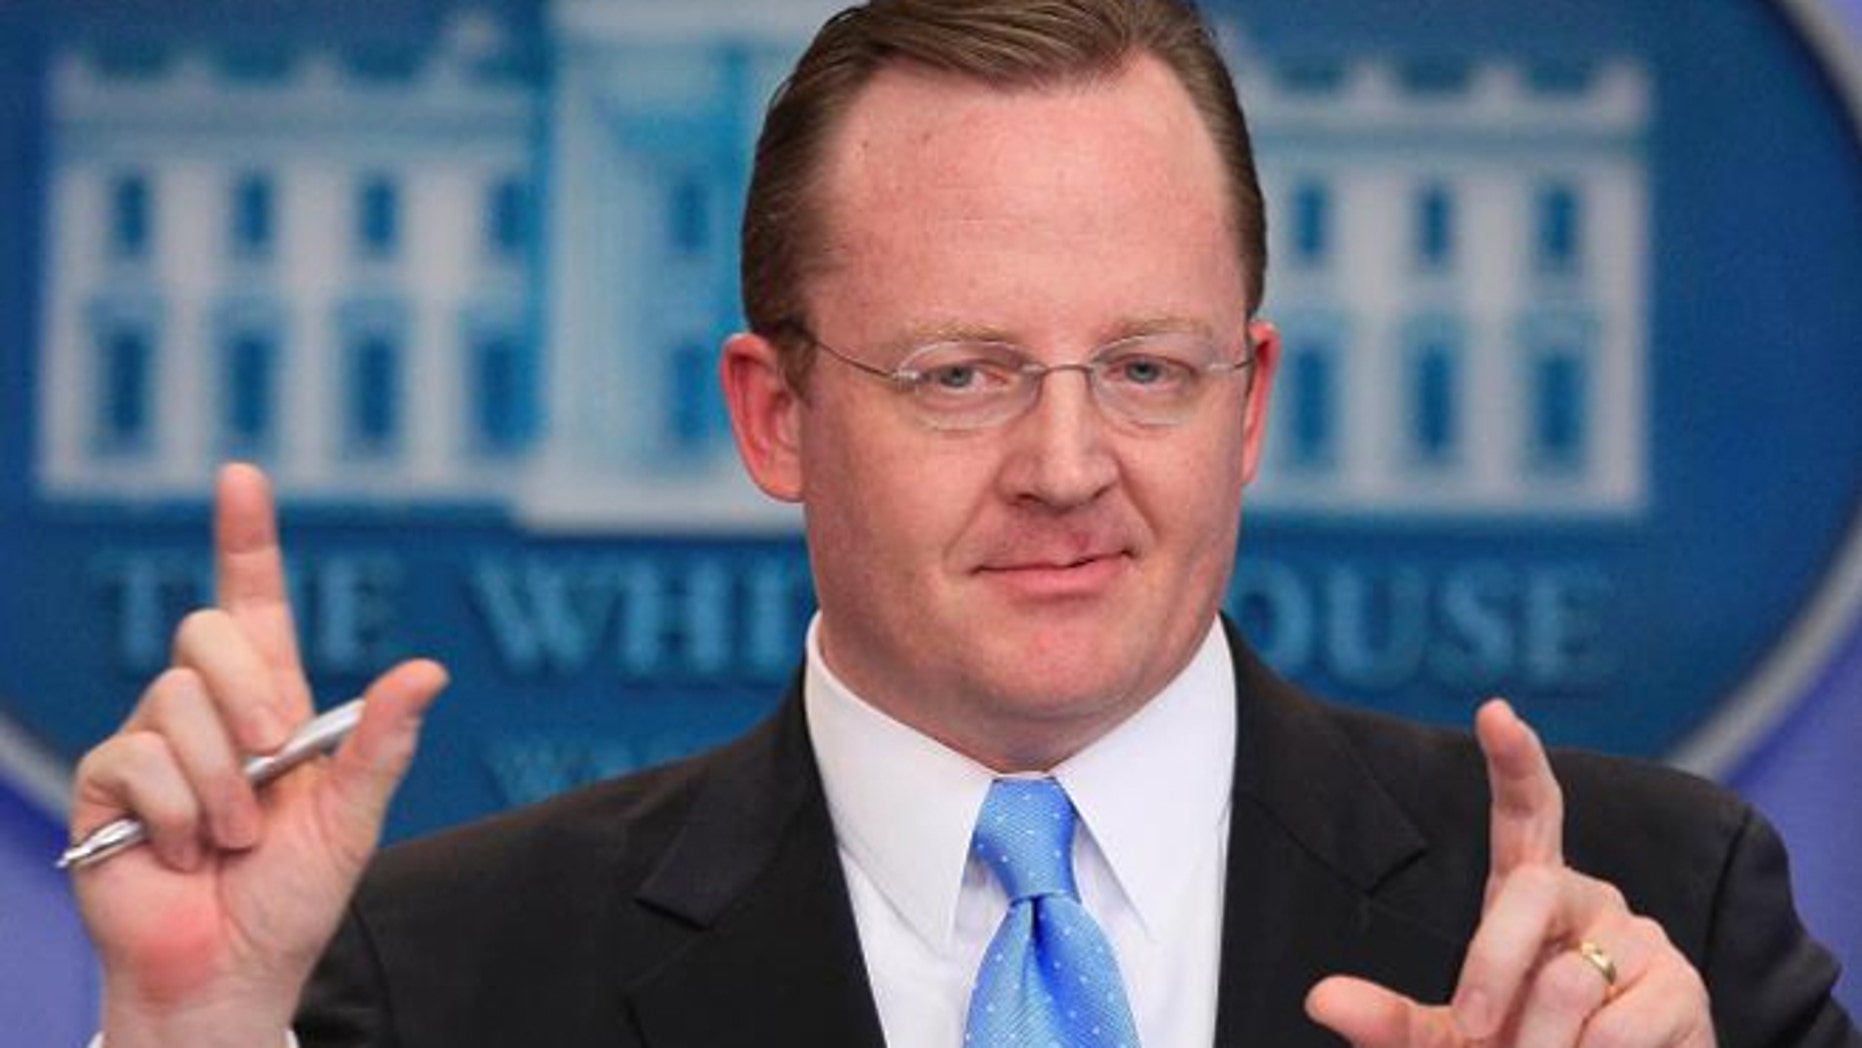 McDonald's hired former White House press secretary Robert Gibbs to help the fast-food giant improve its image.